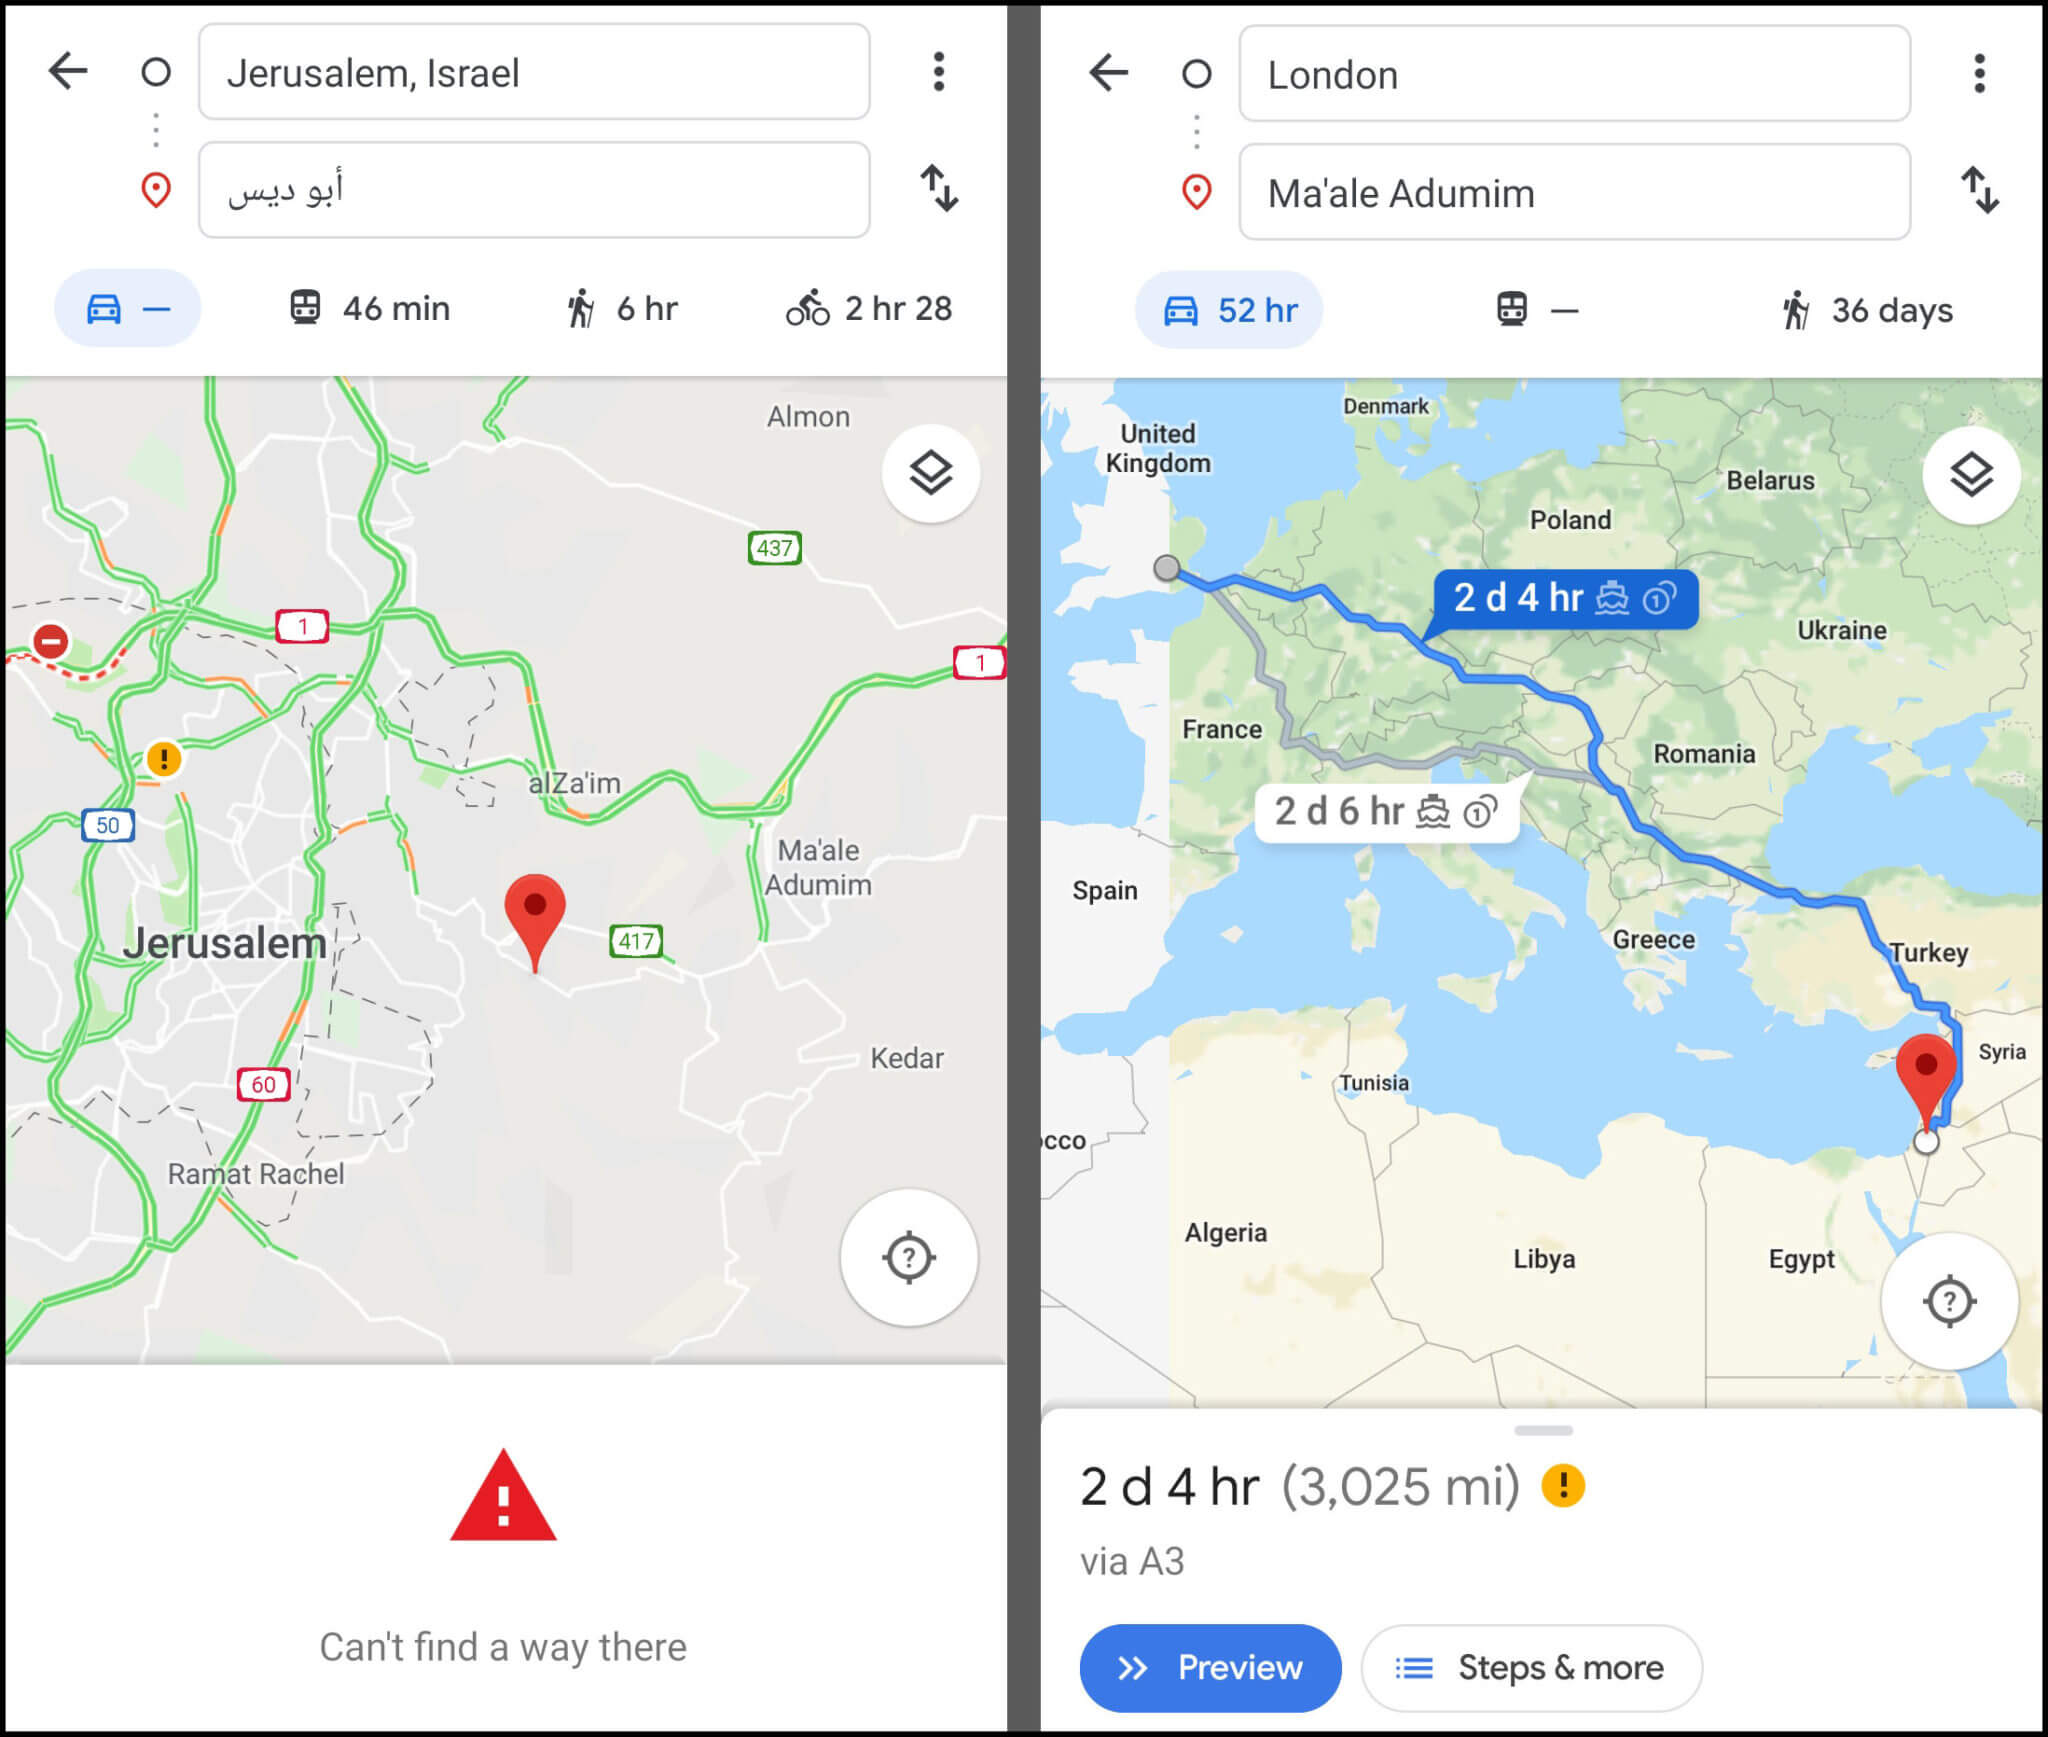 Palestinian cities are ghost towns between settlements, on ... on google earth middle east, israel line map, old town jerusalem map, google earth satellite maps, jerusalem city map, google maps logo, jerusalem location on map, maps of israel map,